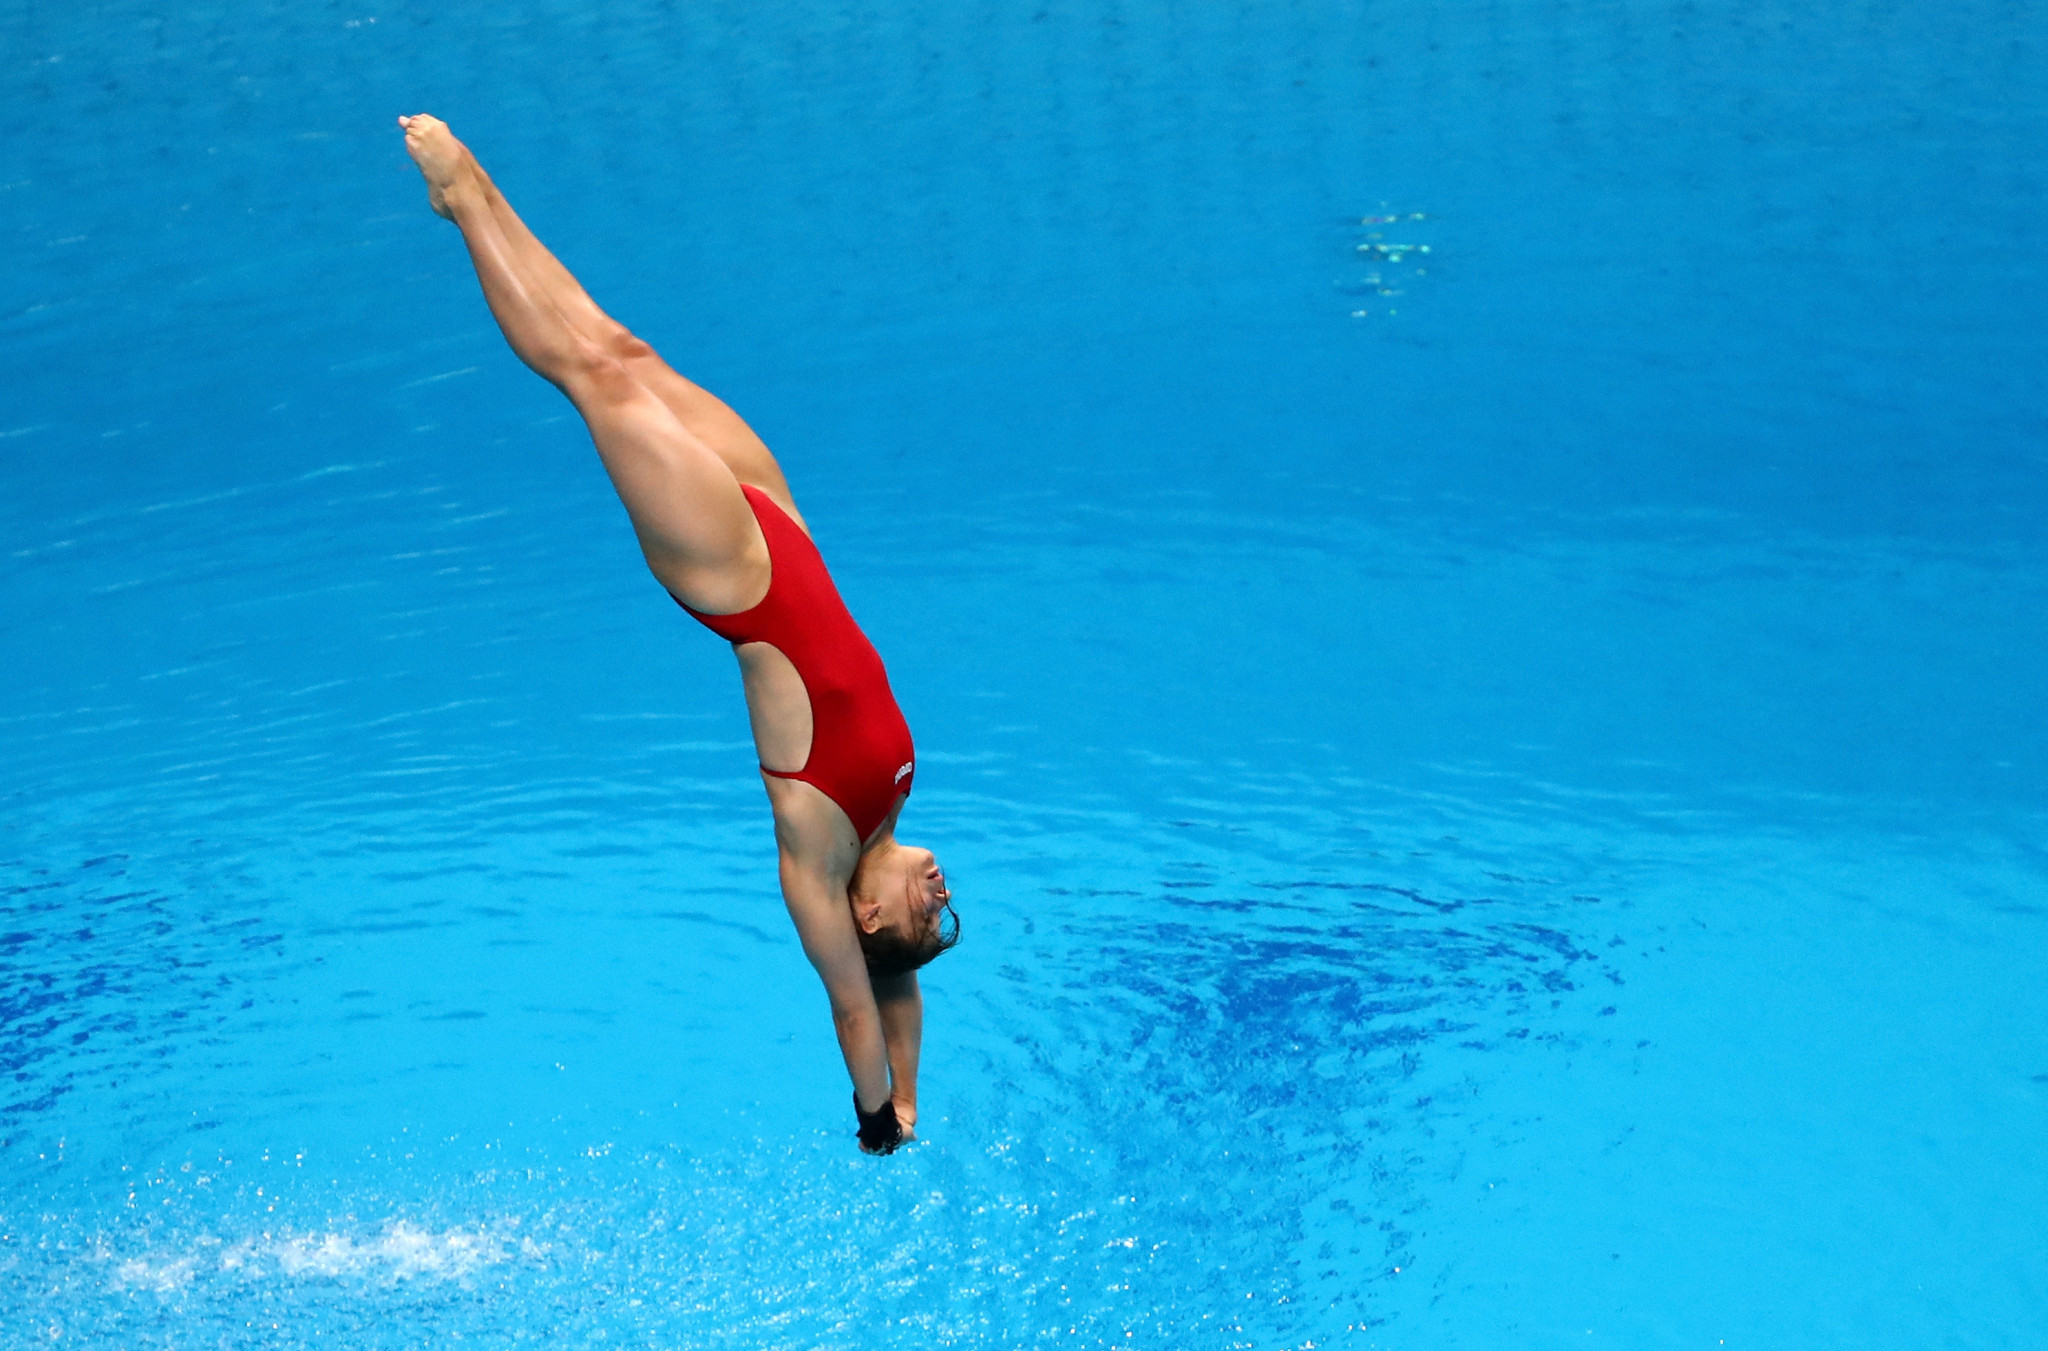 Germany's Maria Kurjo was the runner-up in the women's 10m platform event ©Getty Images